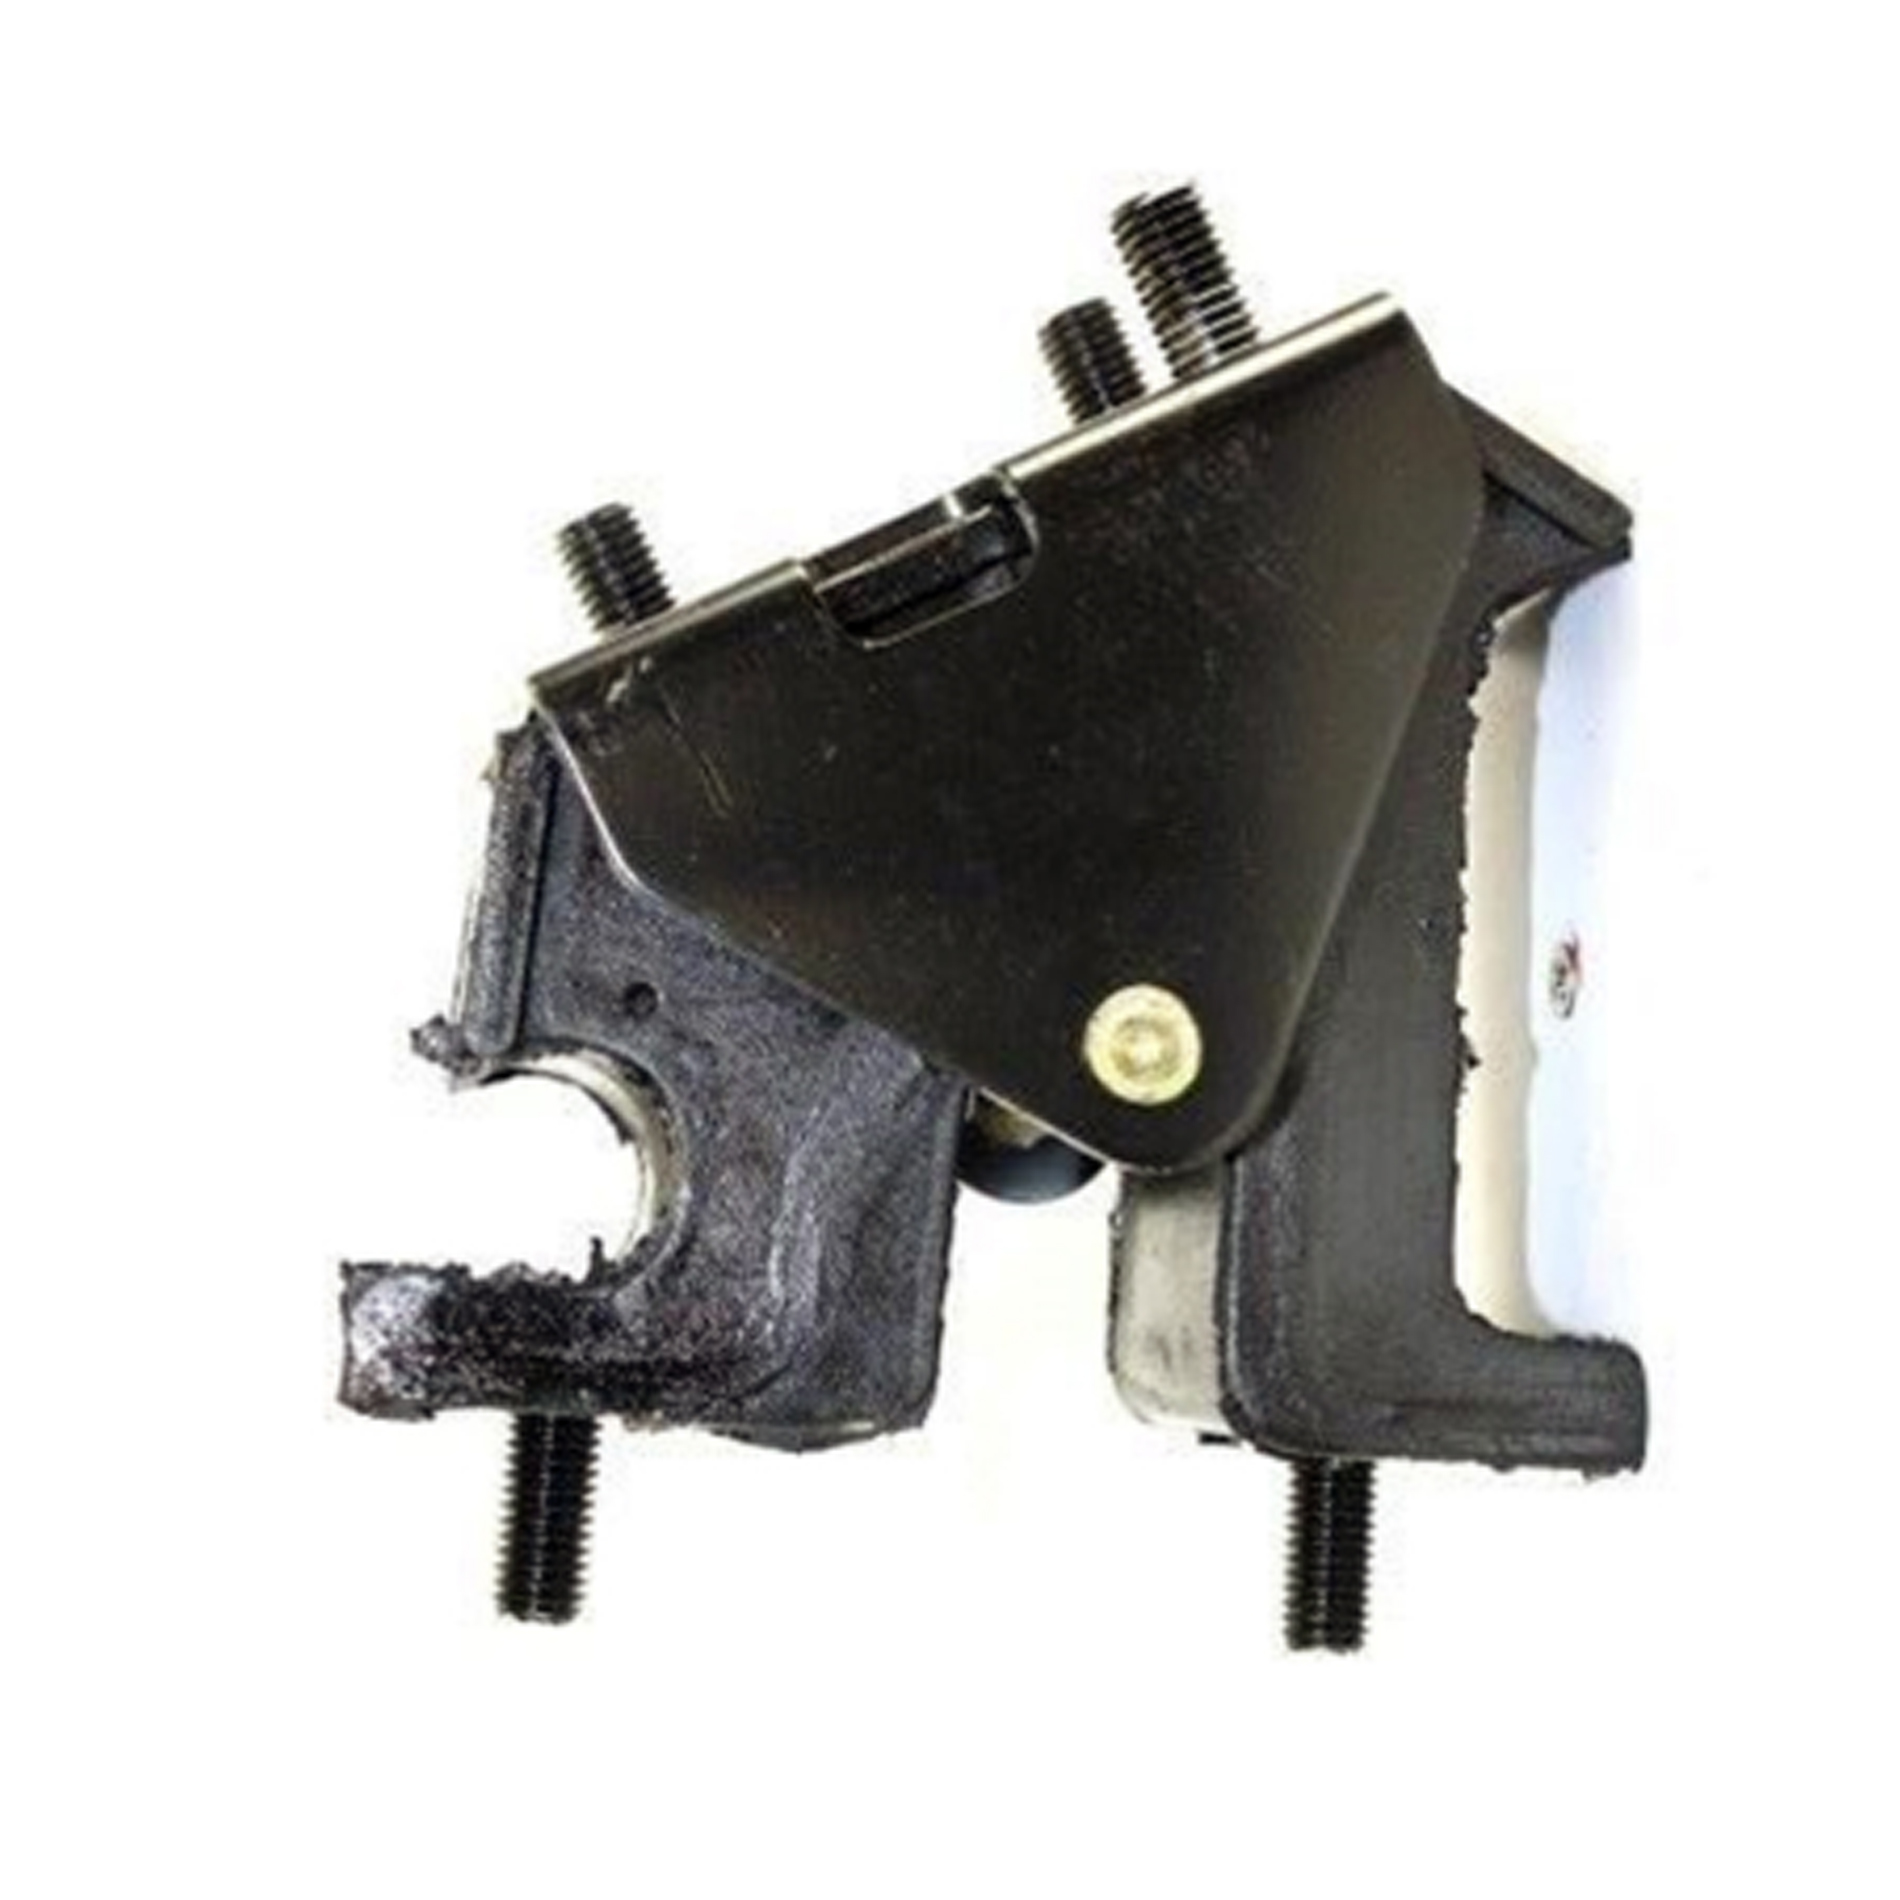 Fits 1996 Buick Regal Limited 3.8L FWD Engine Motor Mount